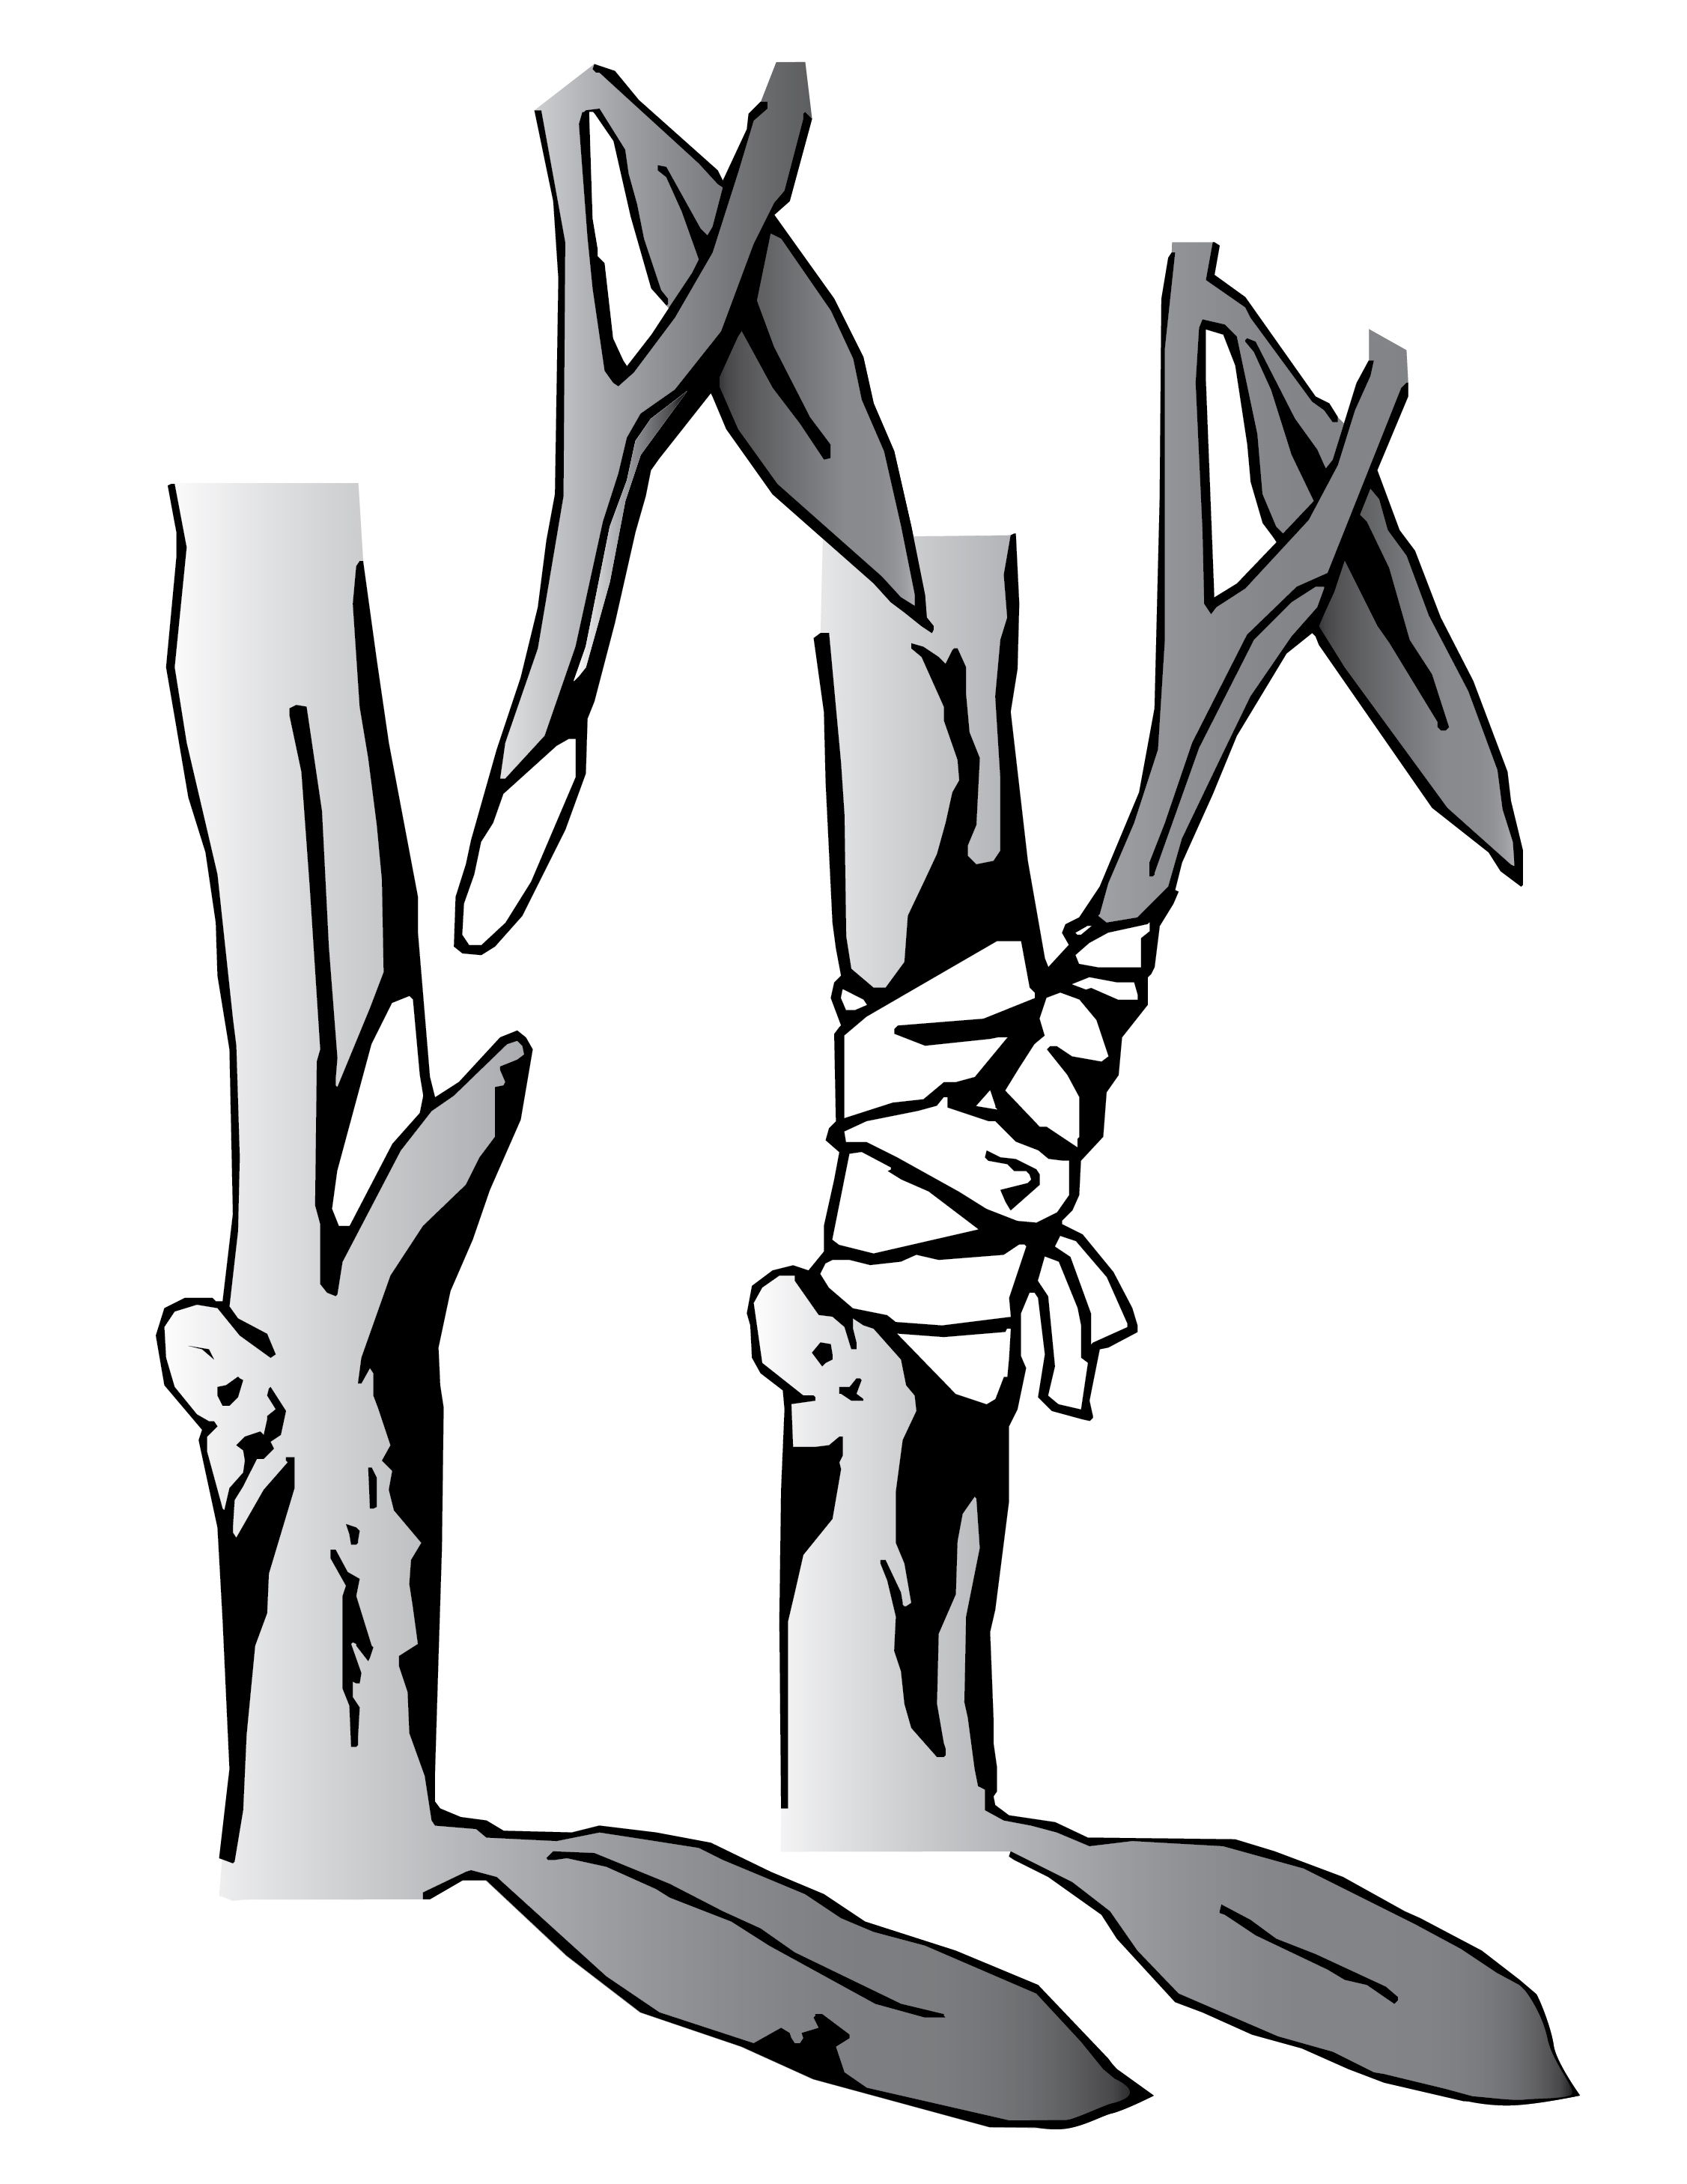 An illustration demonstrating the grafting of a branch into a tree.